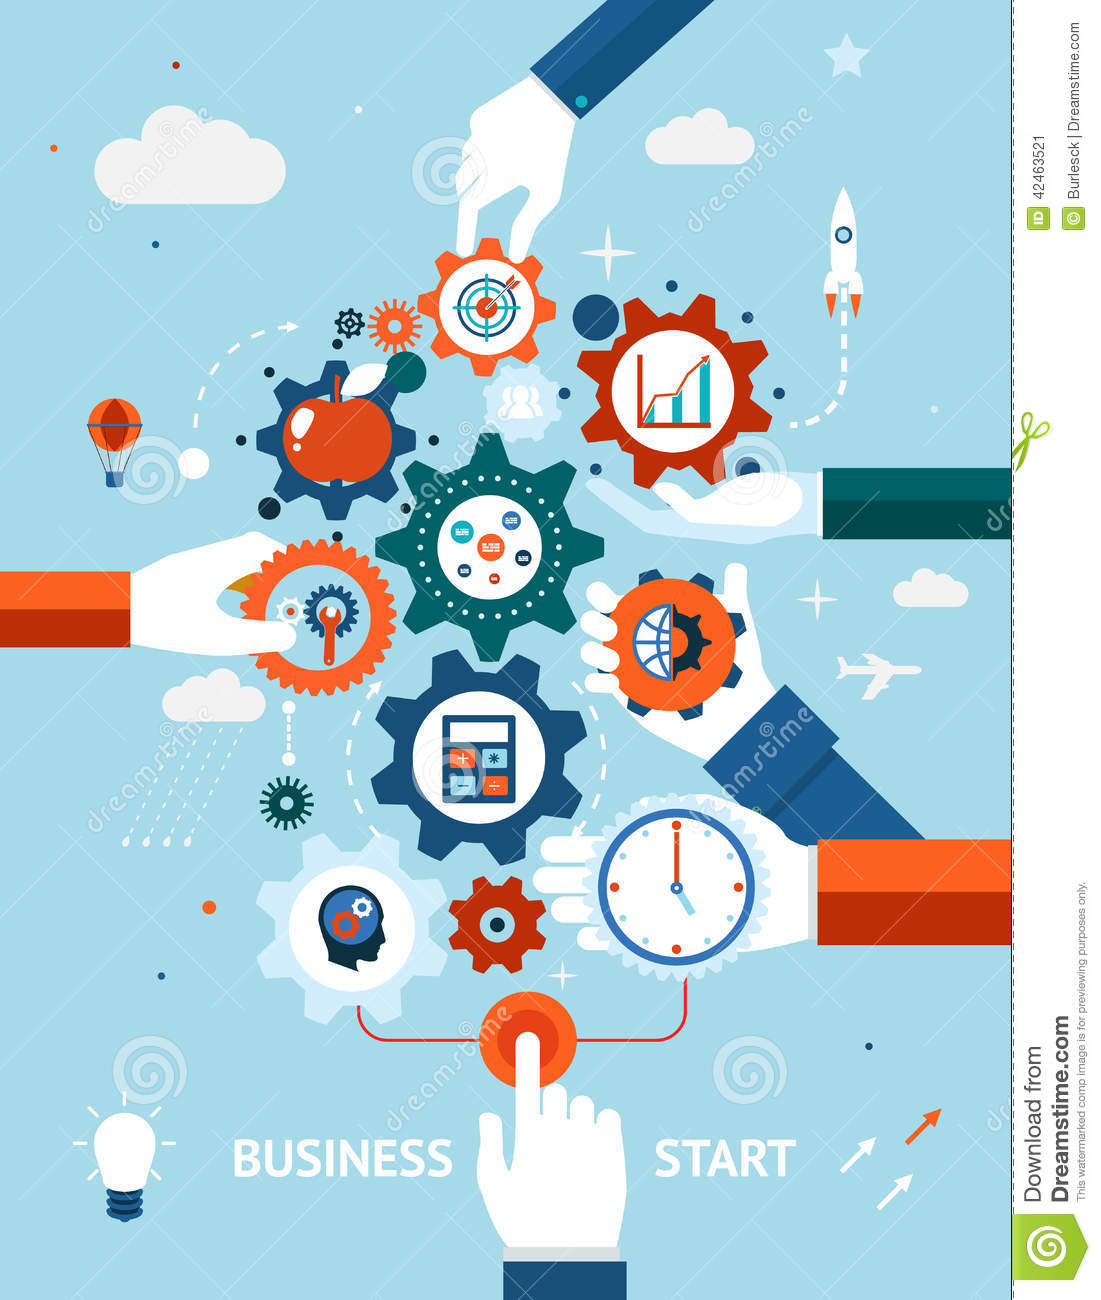 Business And Entrepreneurship Business Start Stock Vector